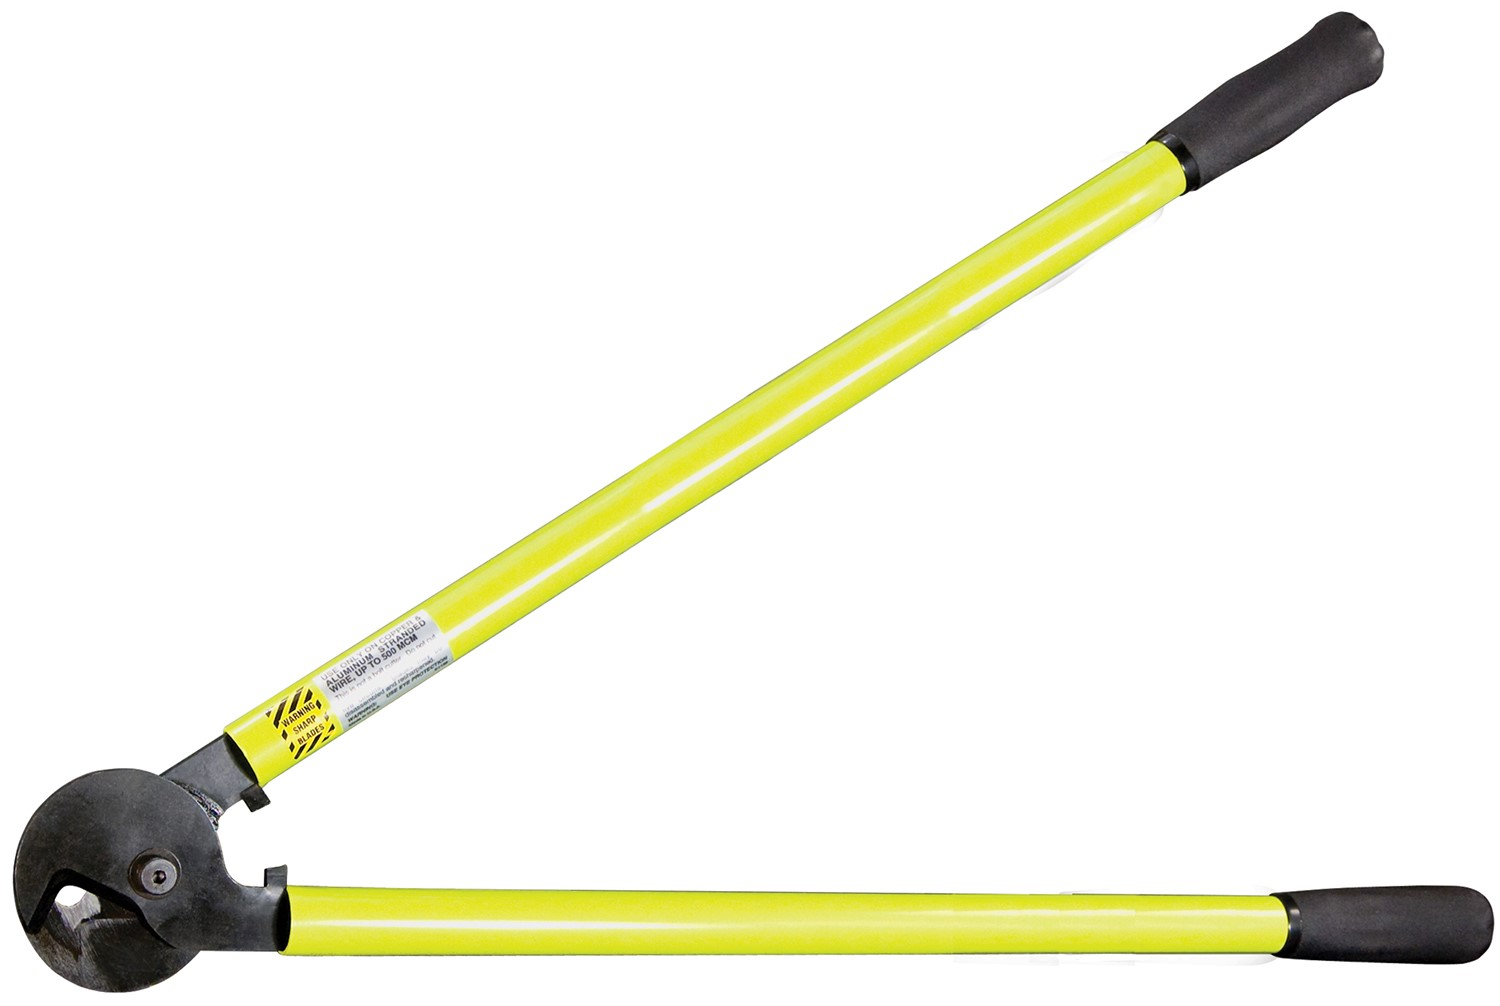 84-9089 – 22″ Cable Cutter, Hand Held